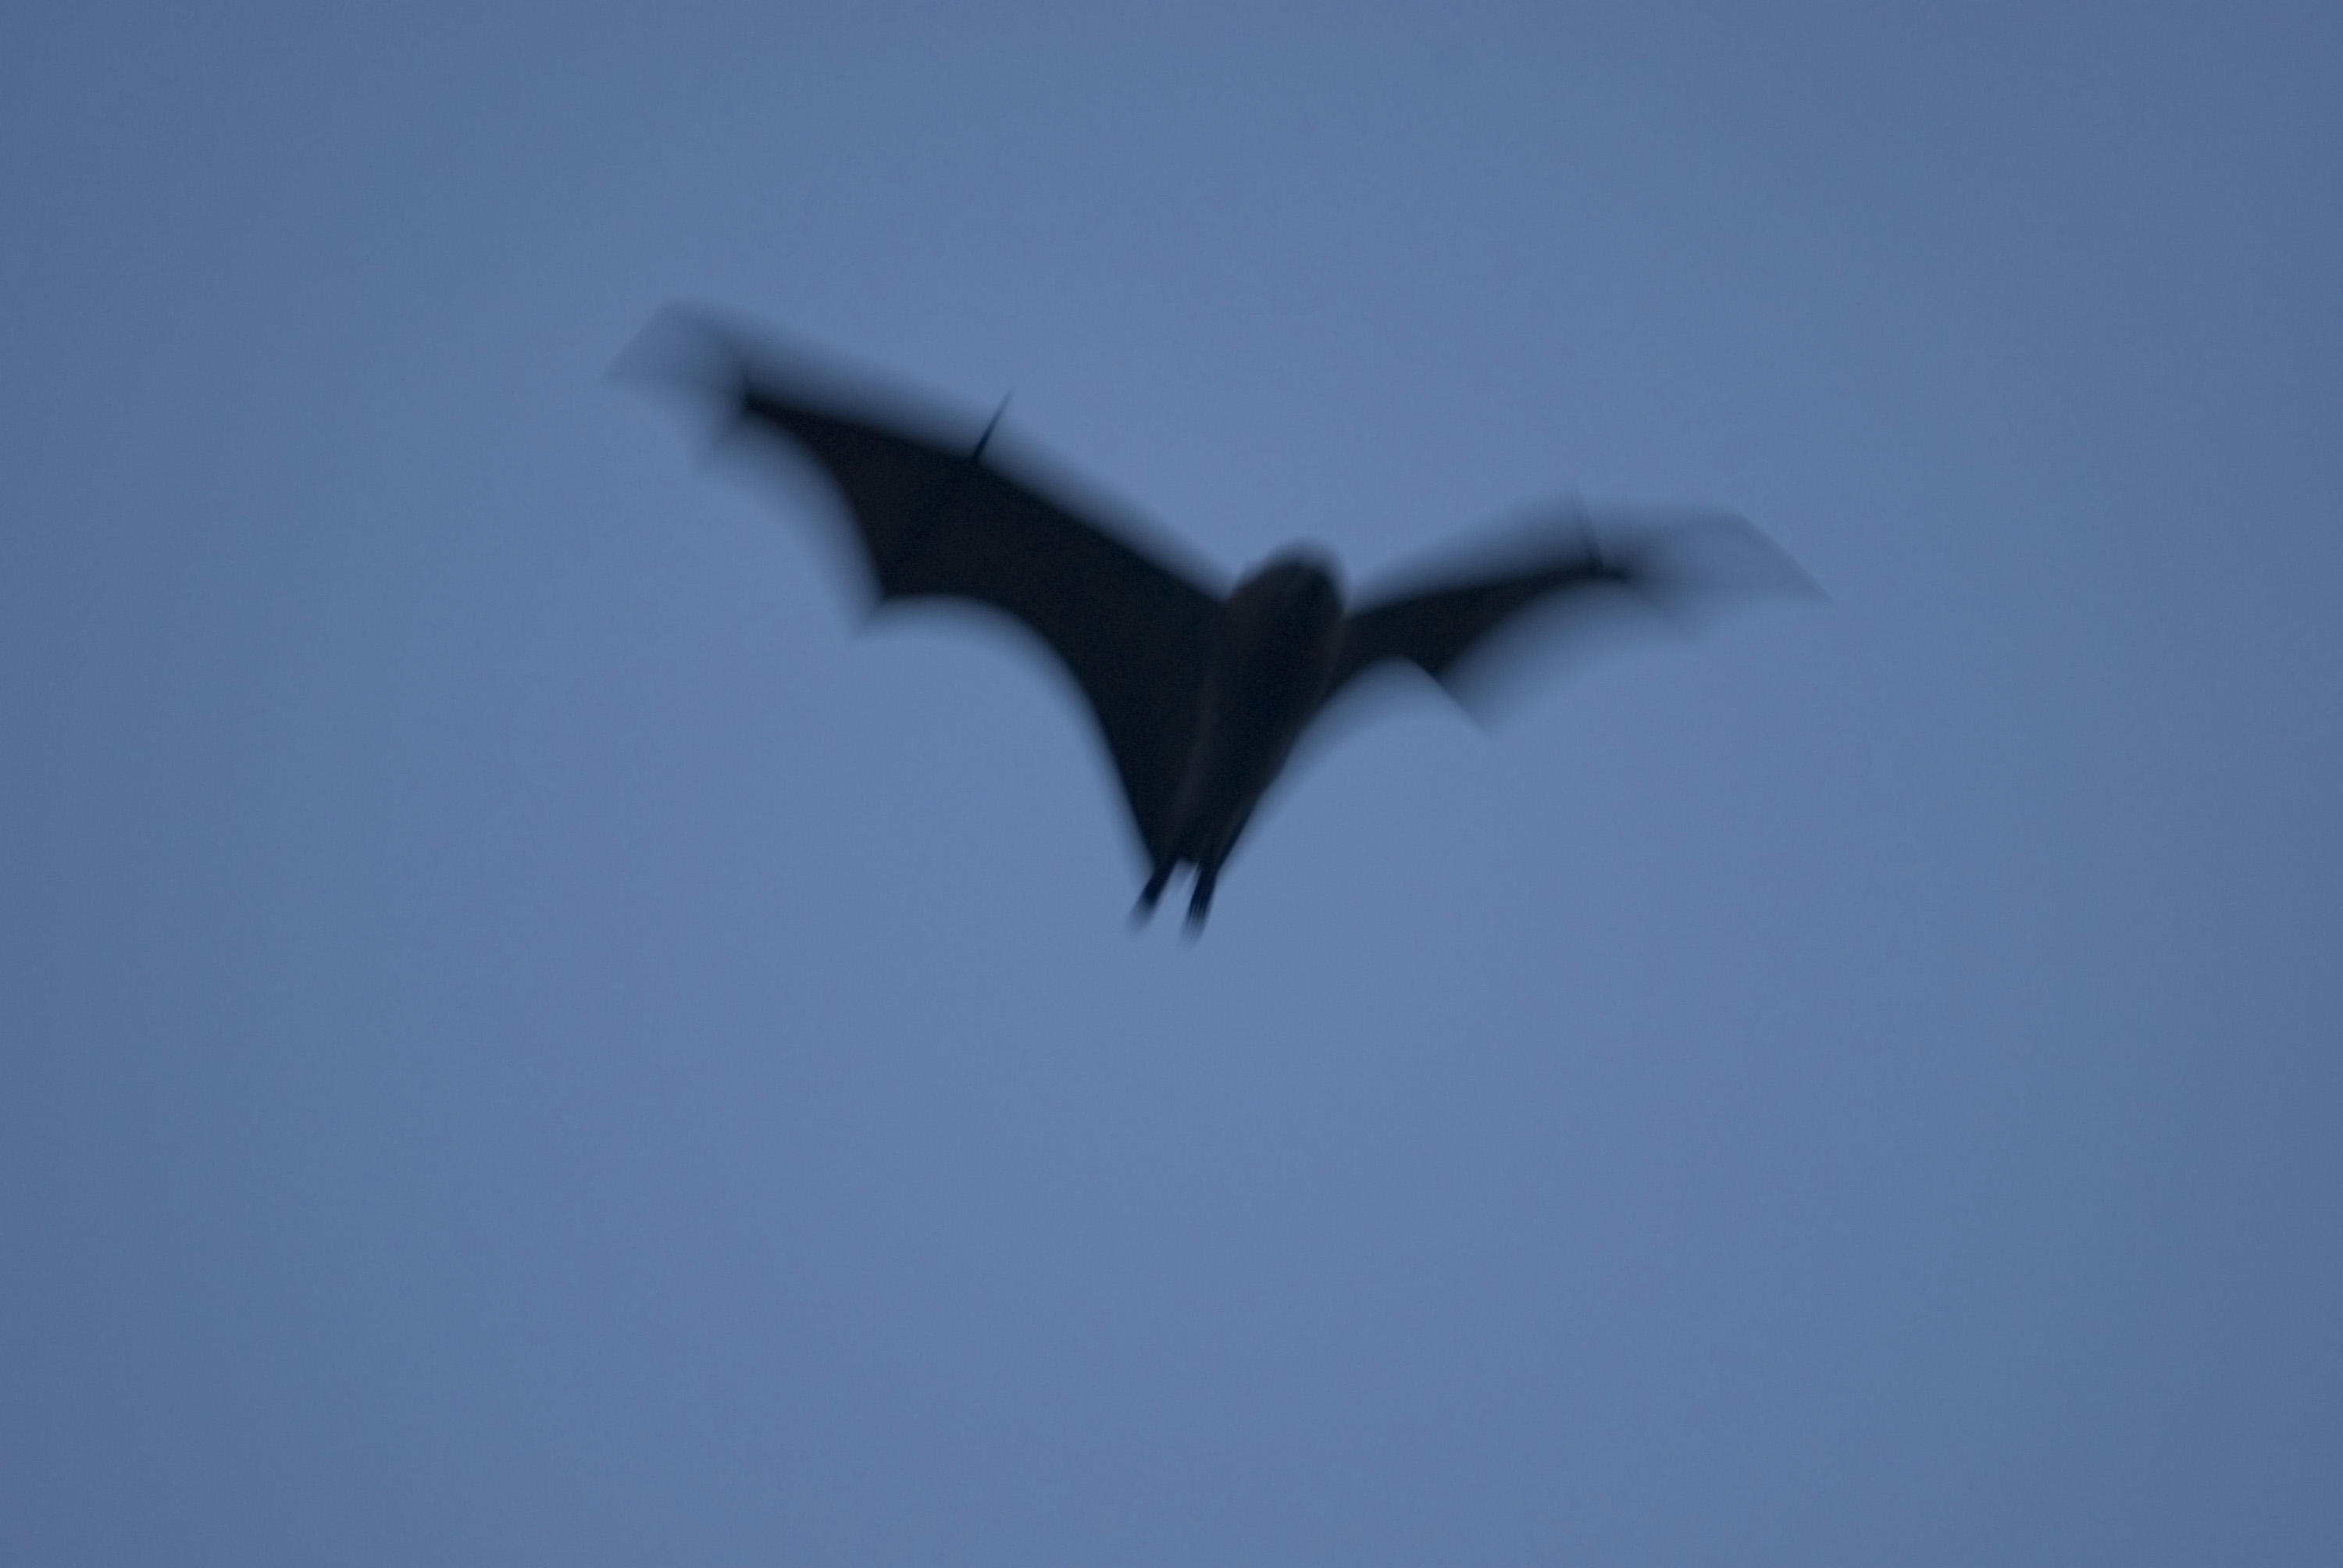 flying black bat with motion blur